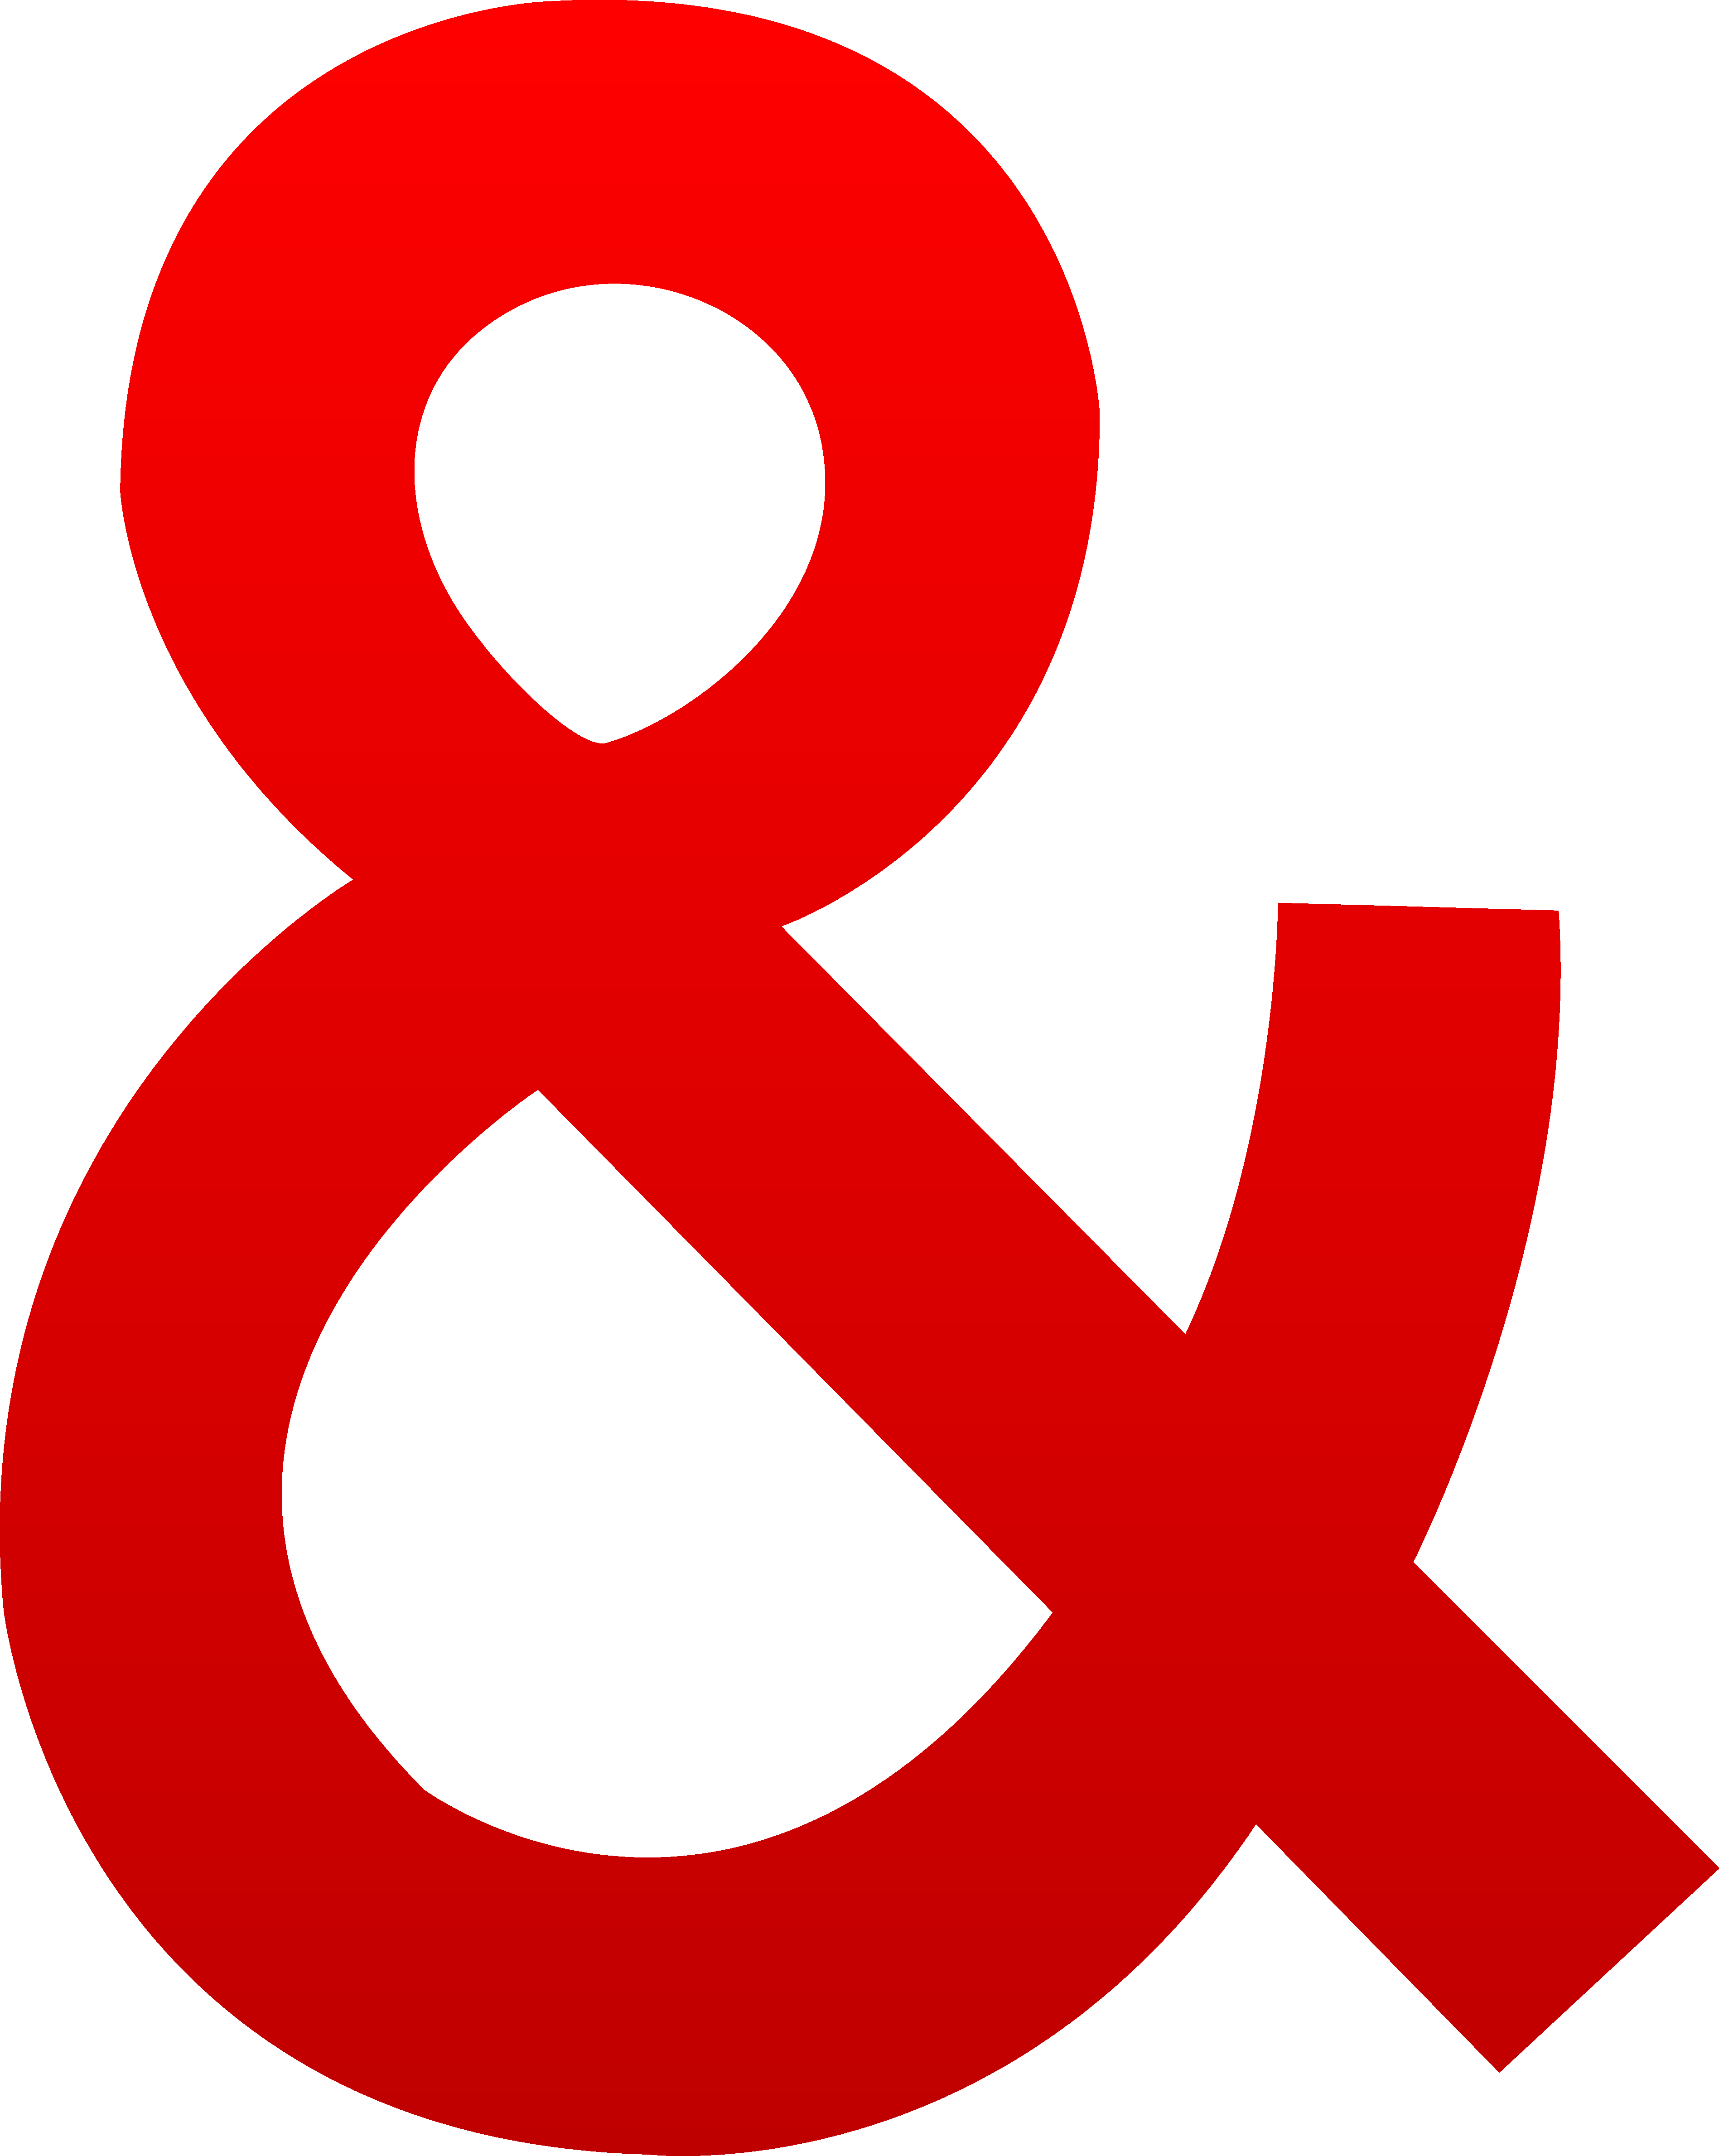 Ampersand clipart.